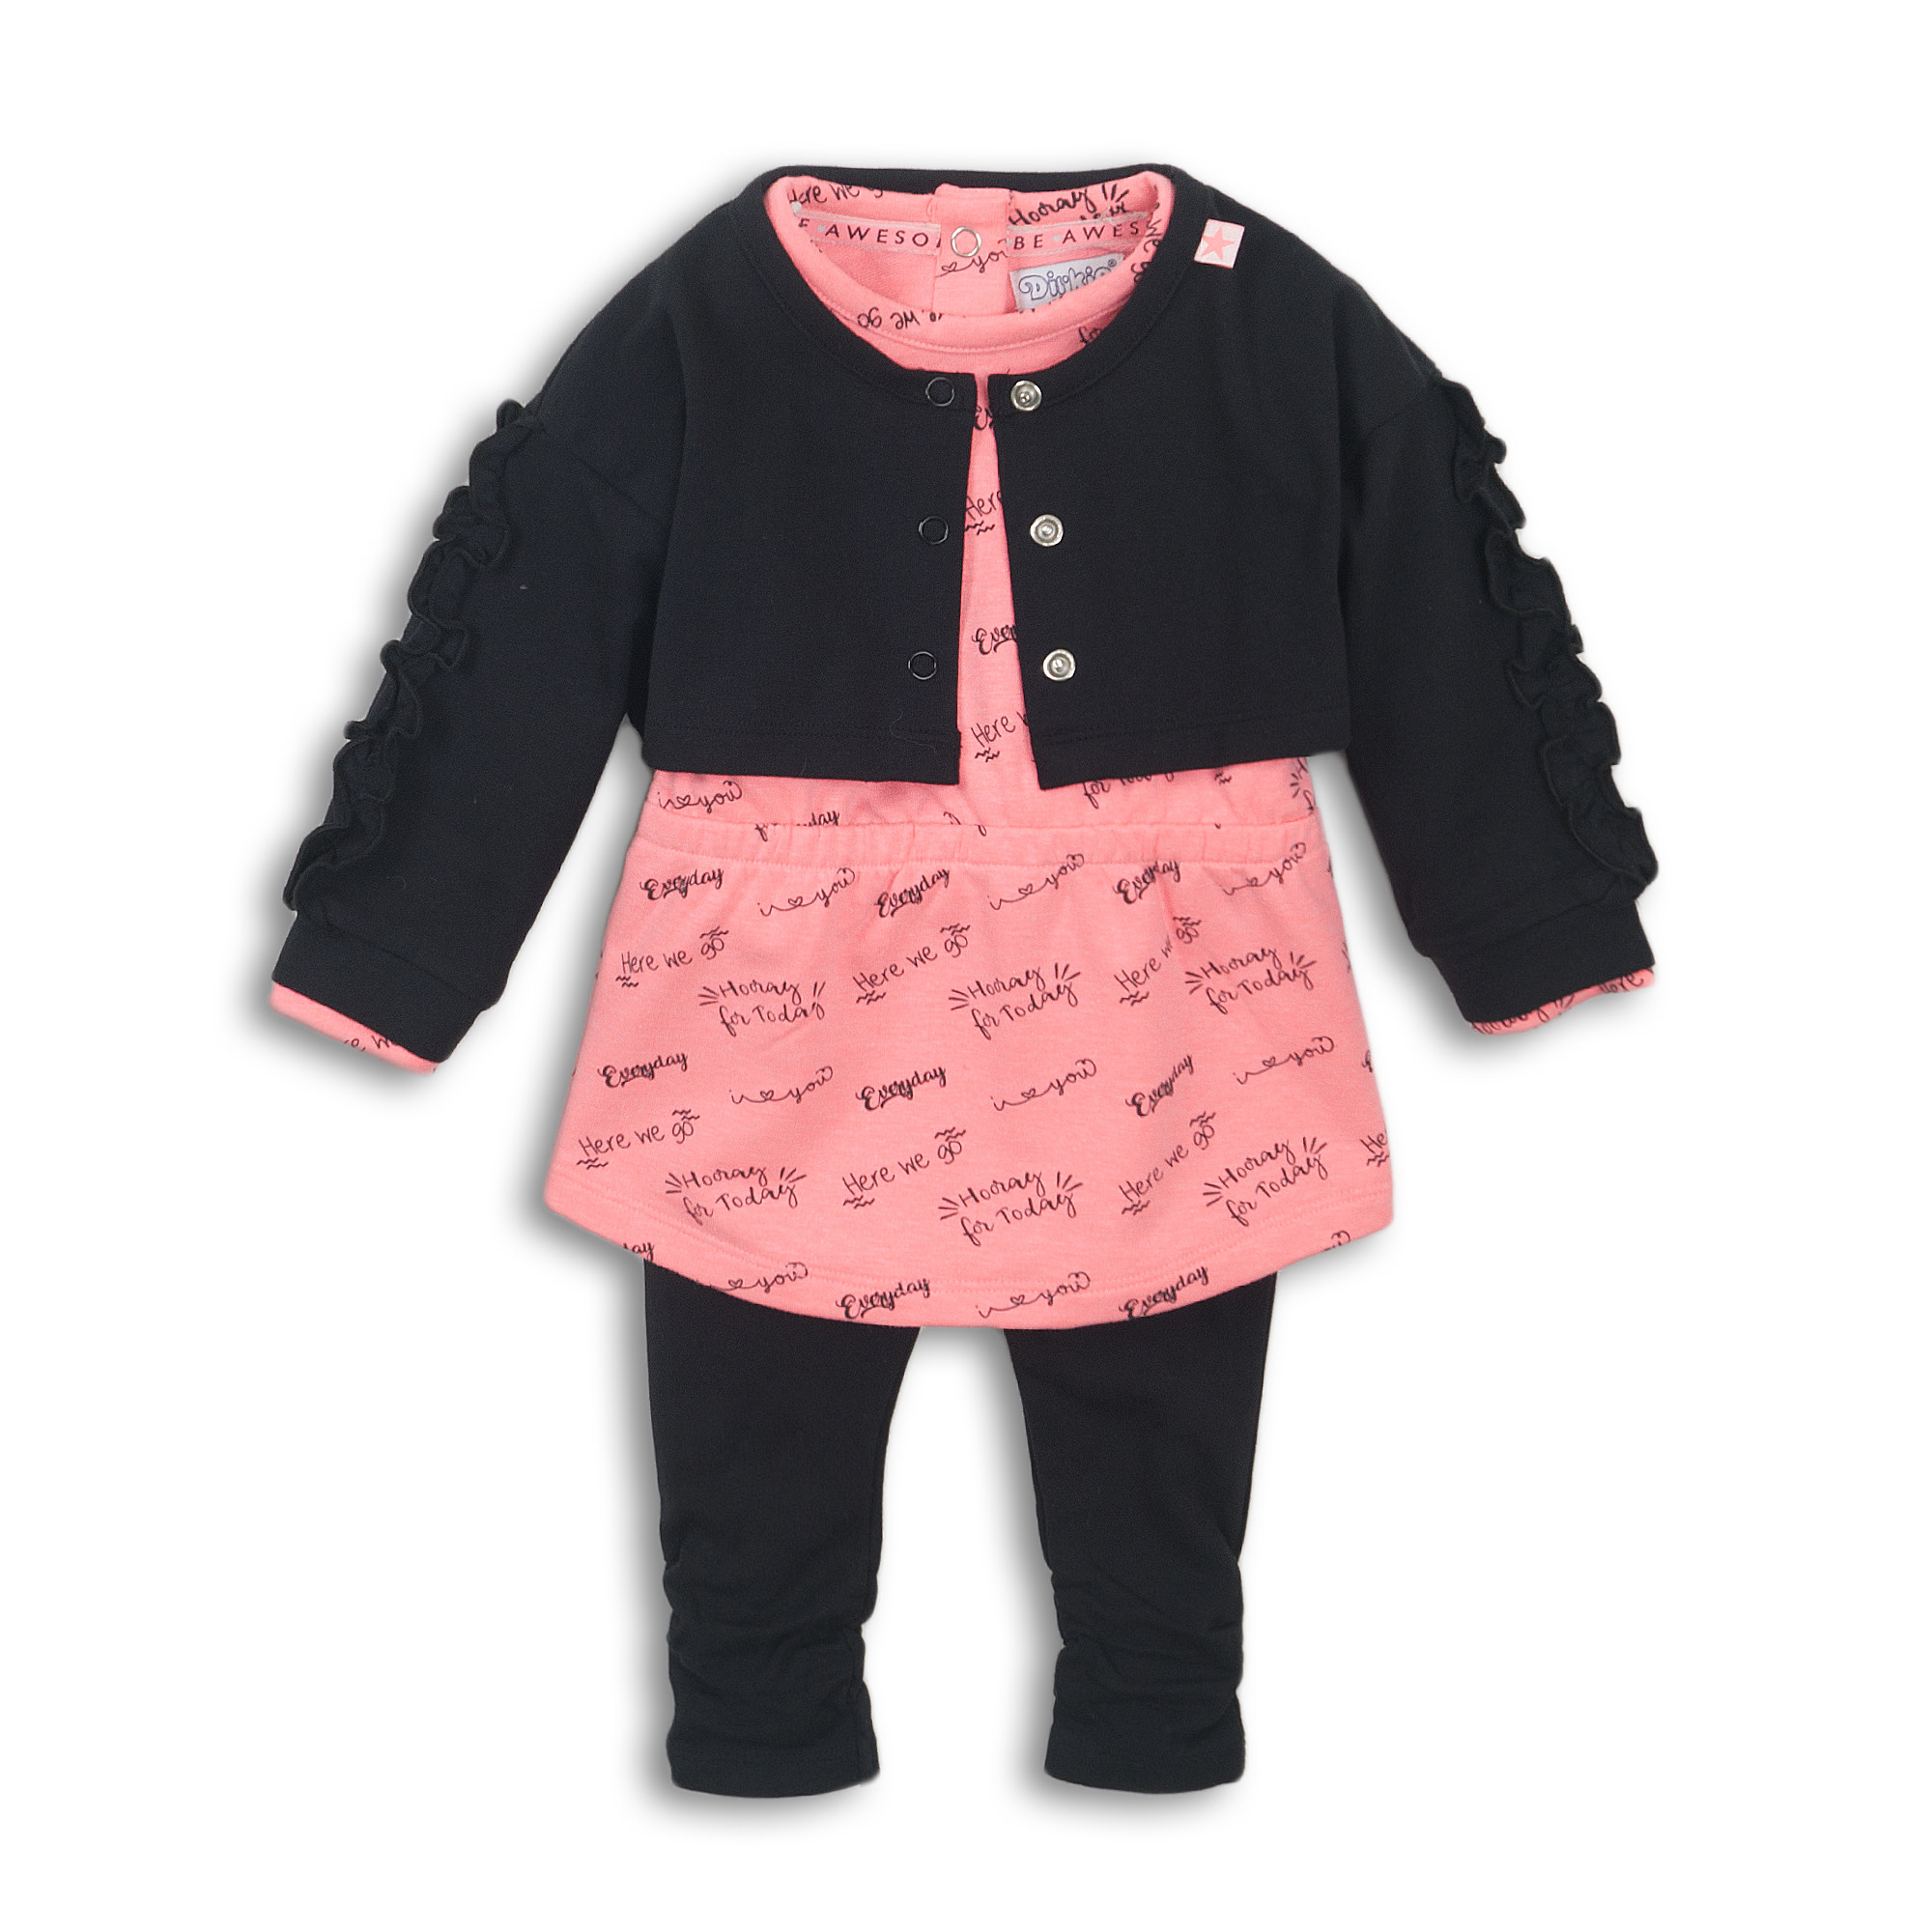 Fiona 3-Piece Baby Outfit